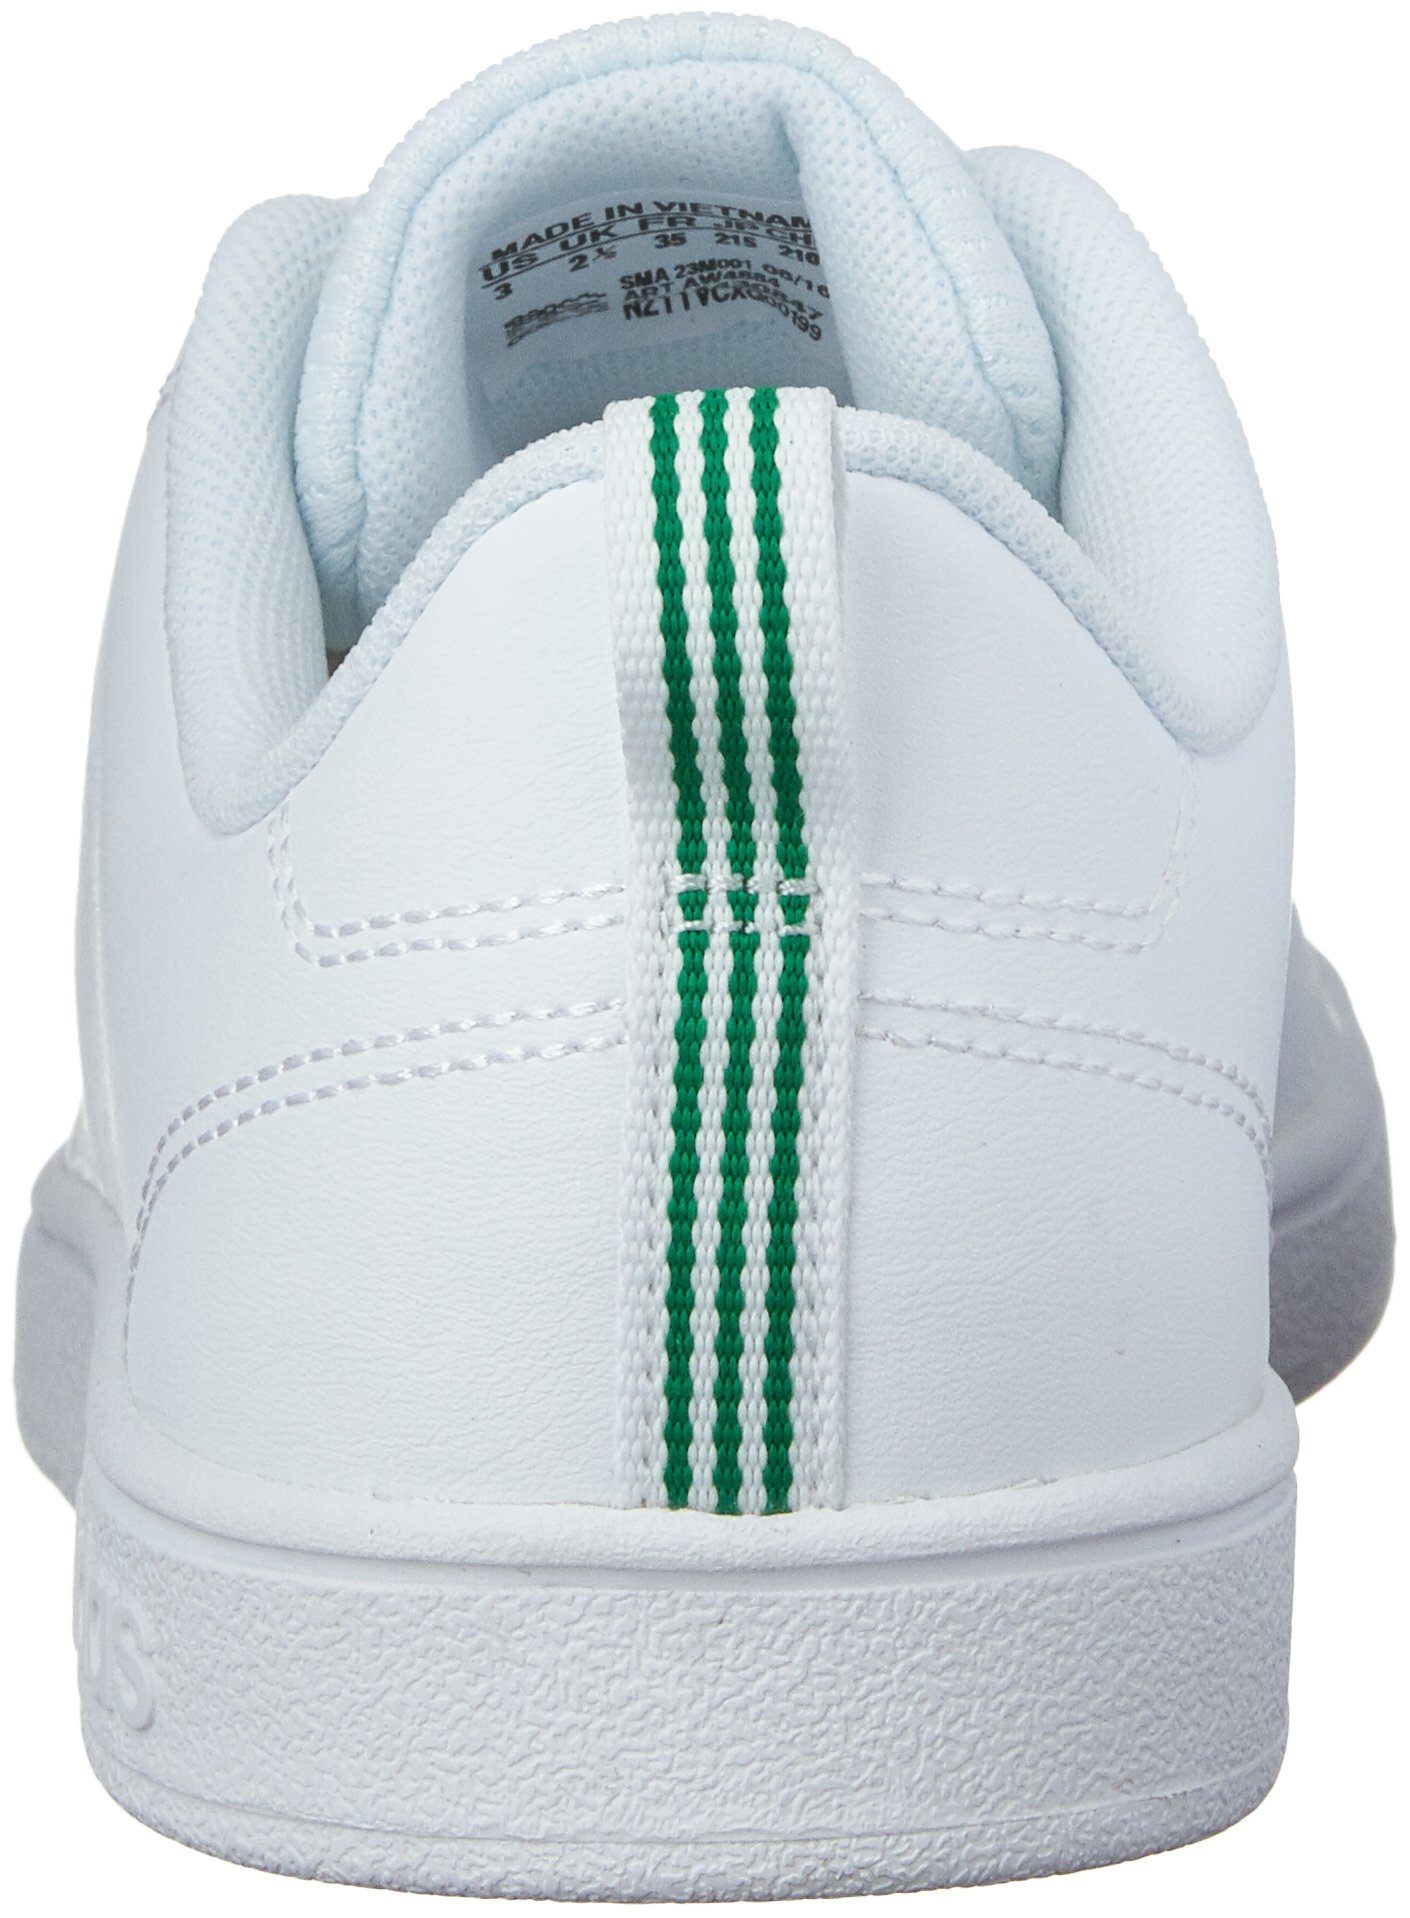 adidas Kids' VS Advantage Clean Sneaker, White/White/Green, 1.5 M US Little Kid by adidas (Image #2)